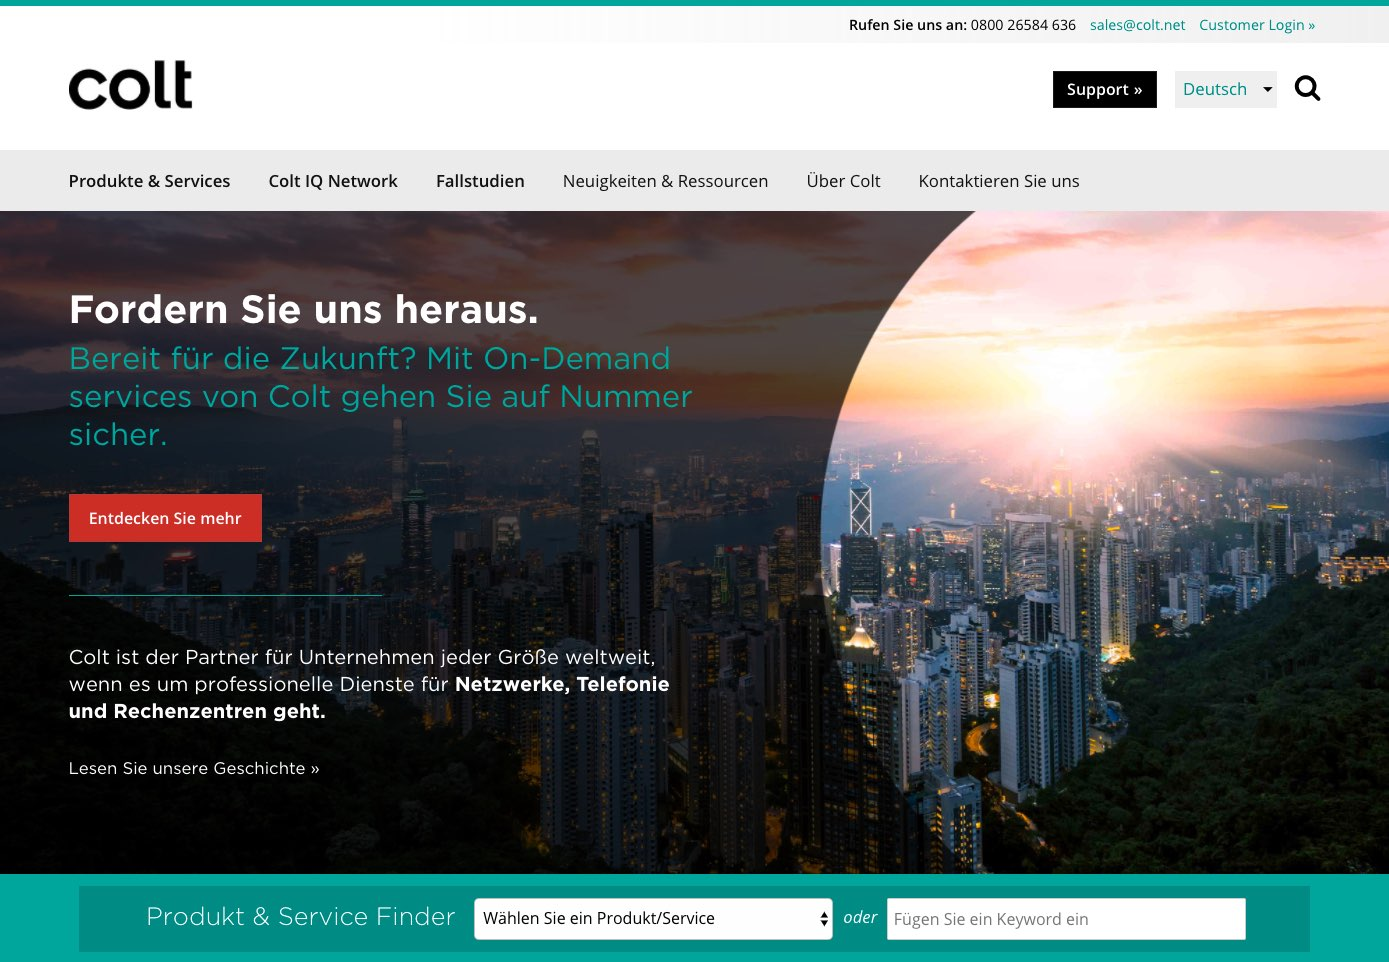 Screenshot of german language Colt homepage.